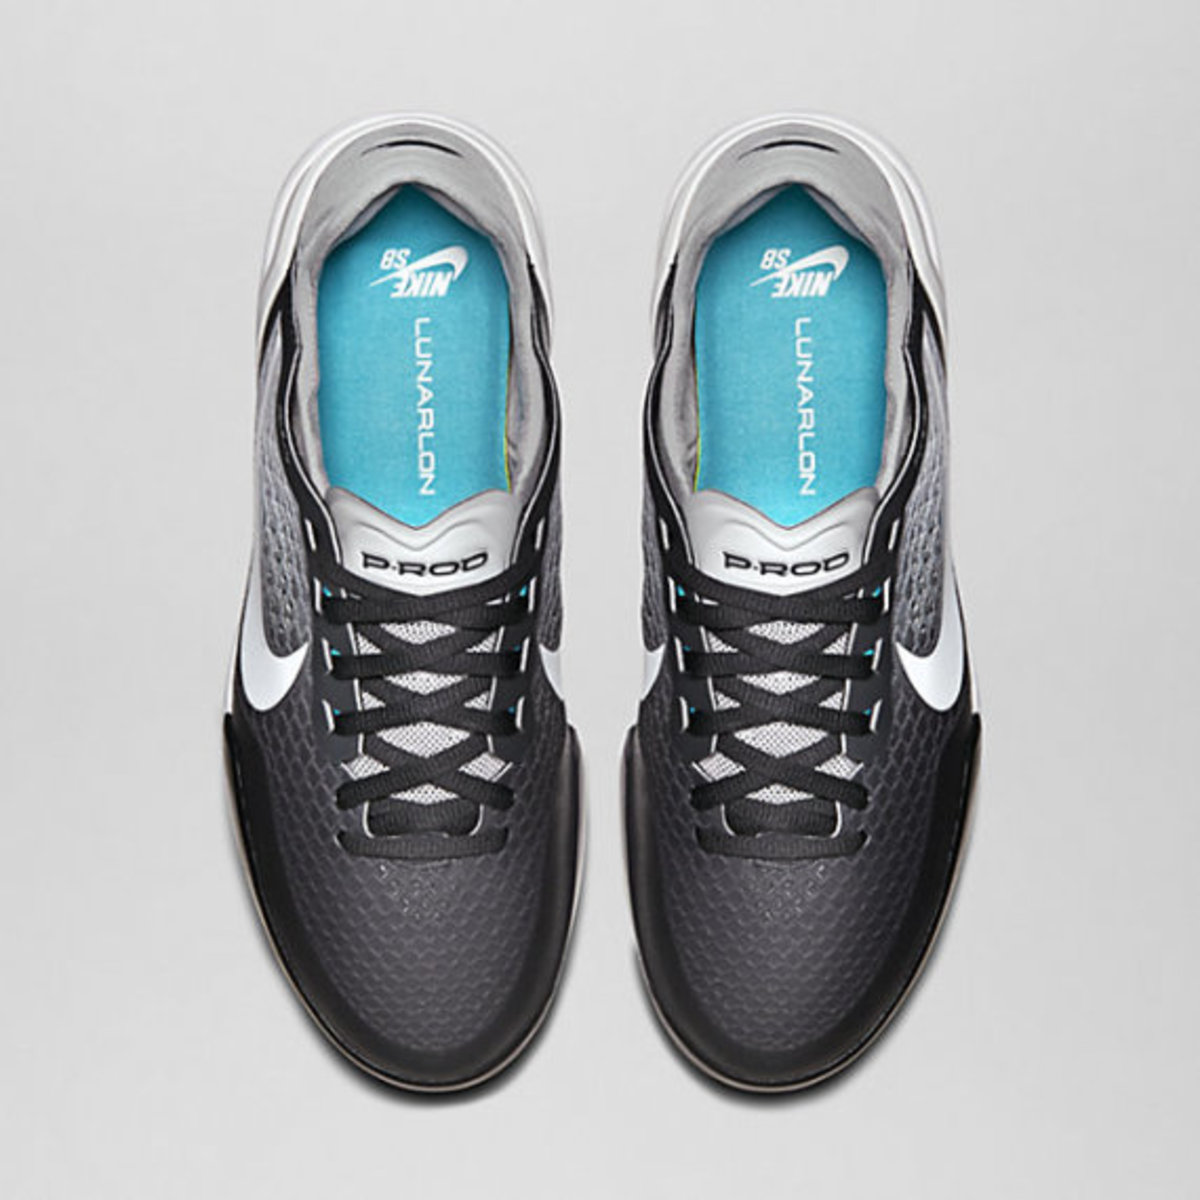 nike-sb-paul-rod-8-anthracite-03